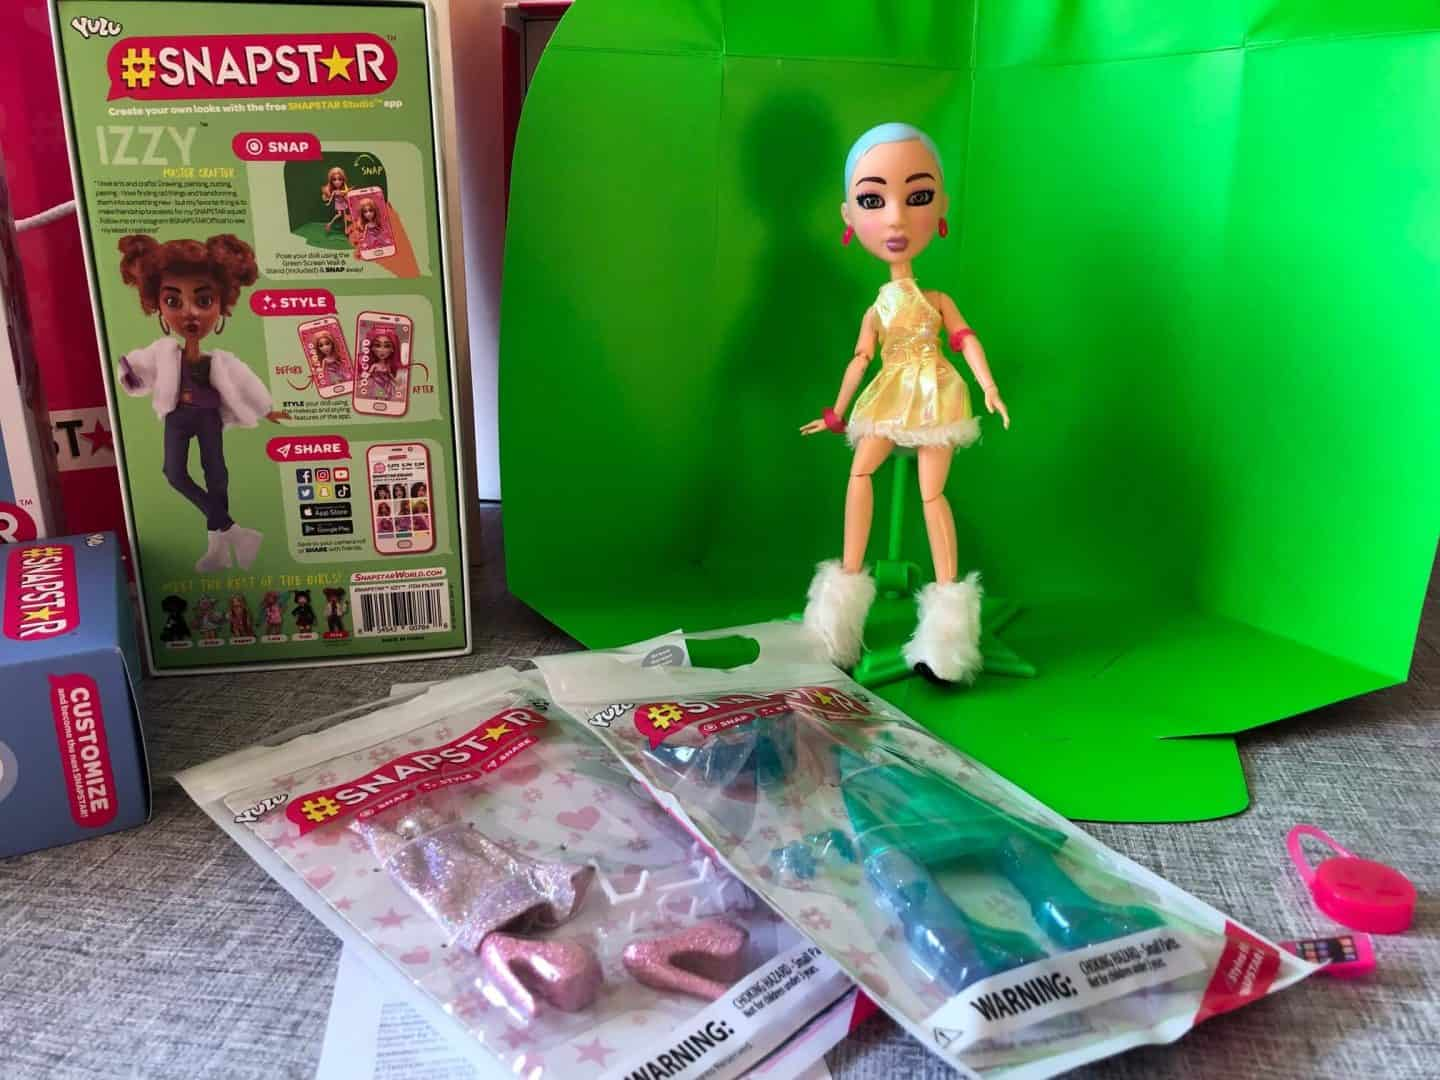 SNAPSTAR doll and accessories